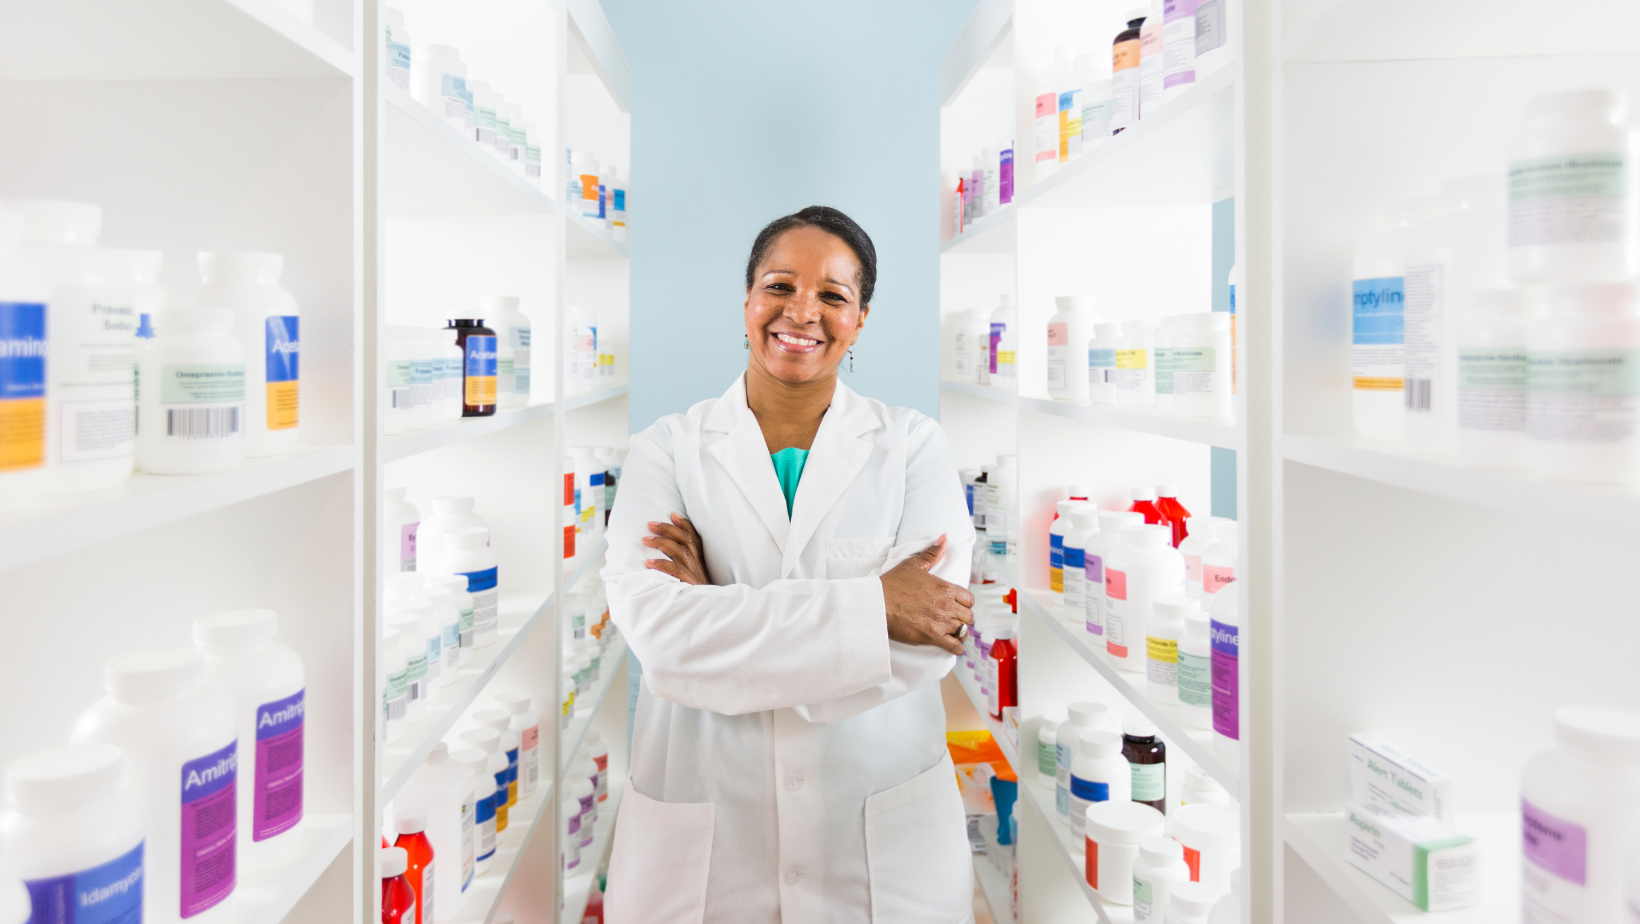 Female Pharmacist standing in the middle of shelves lined with various medications